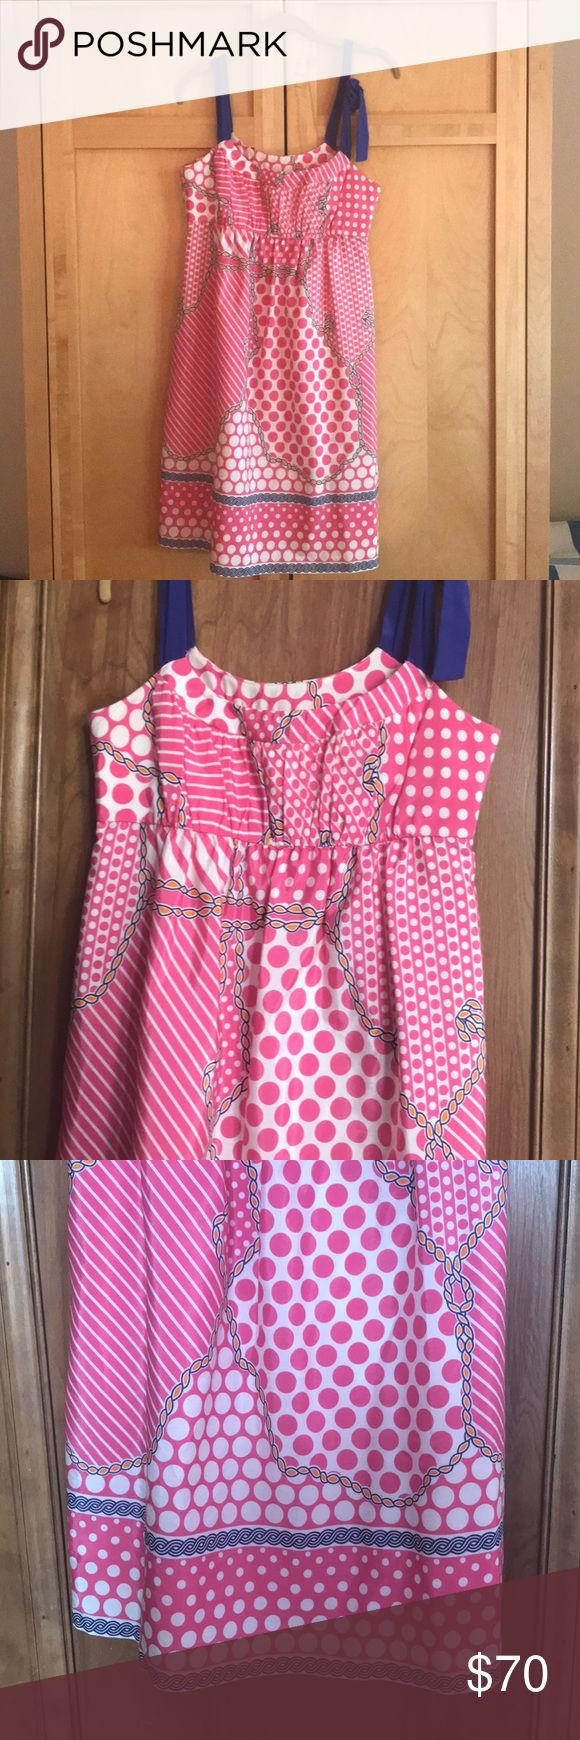 Tibi Size 4 summer dress Perfectly pink and preppy dress! Great for a summer garden party or graduation. Tibi Dresses Mini